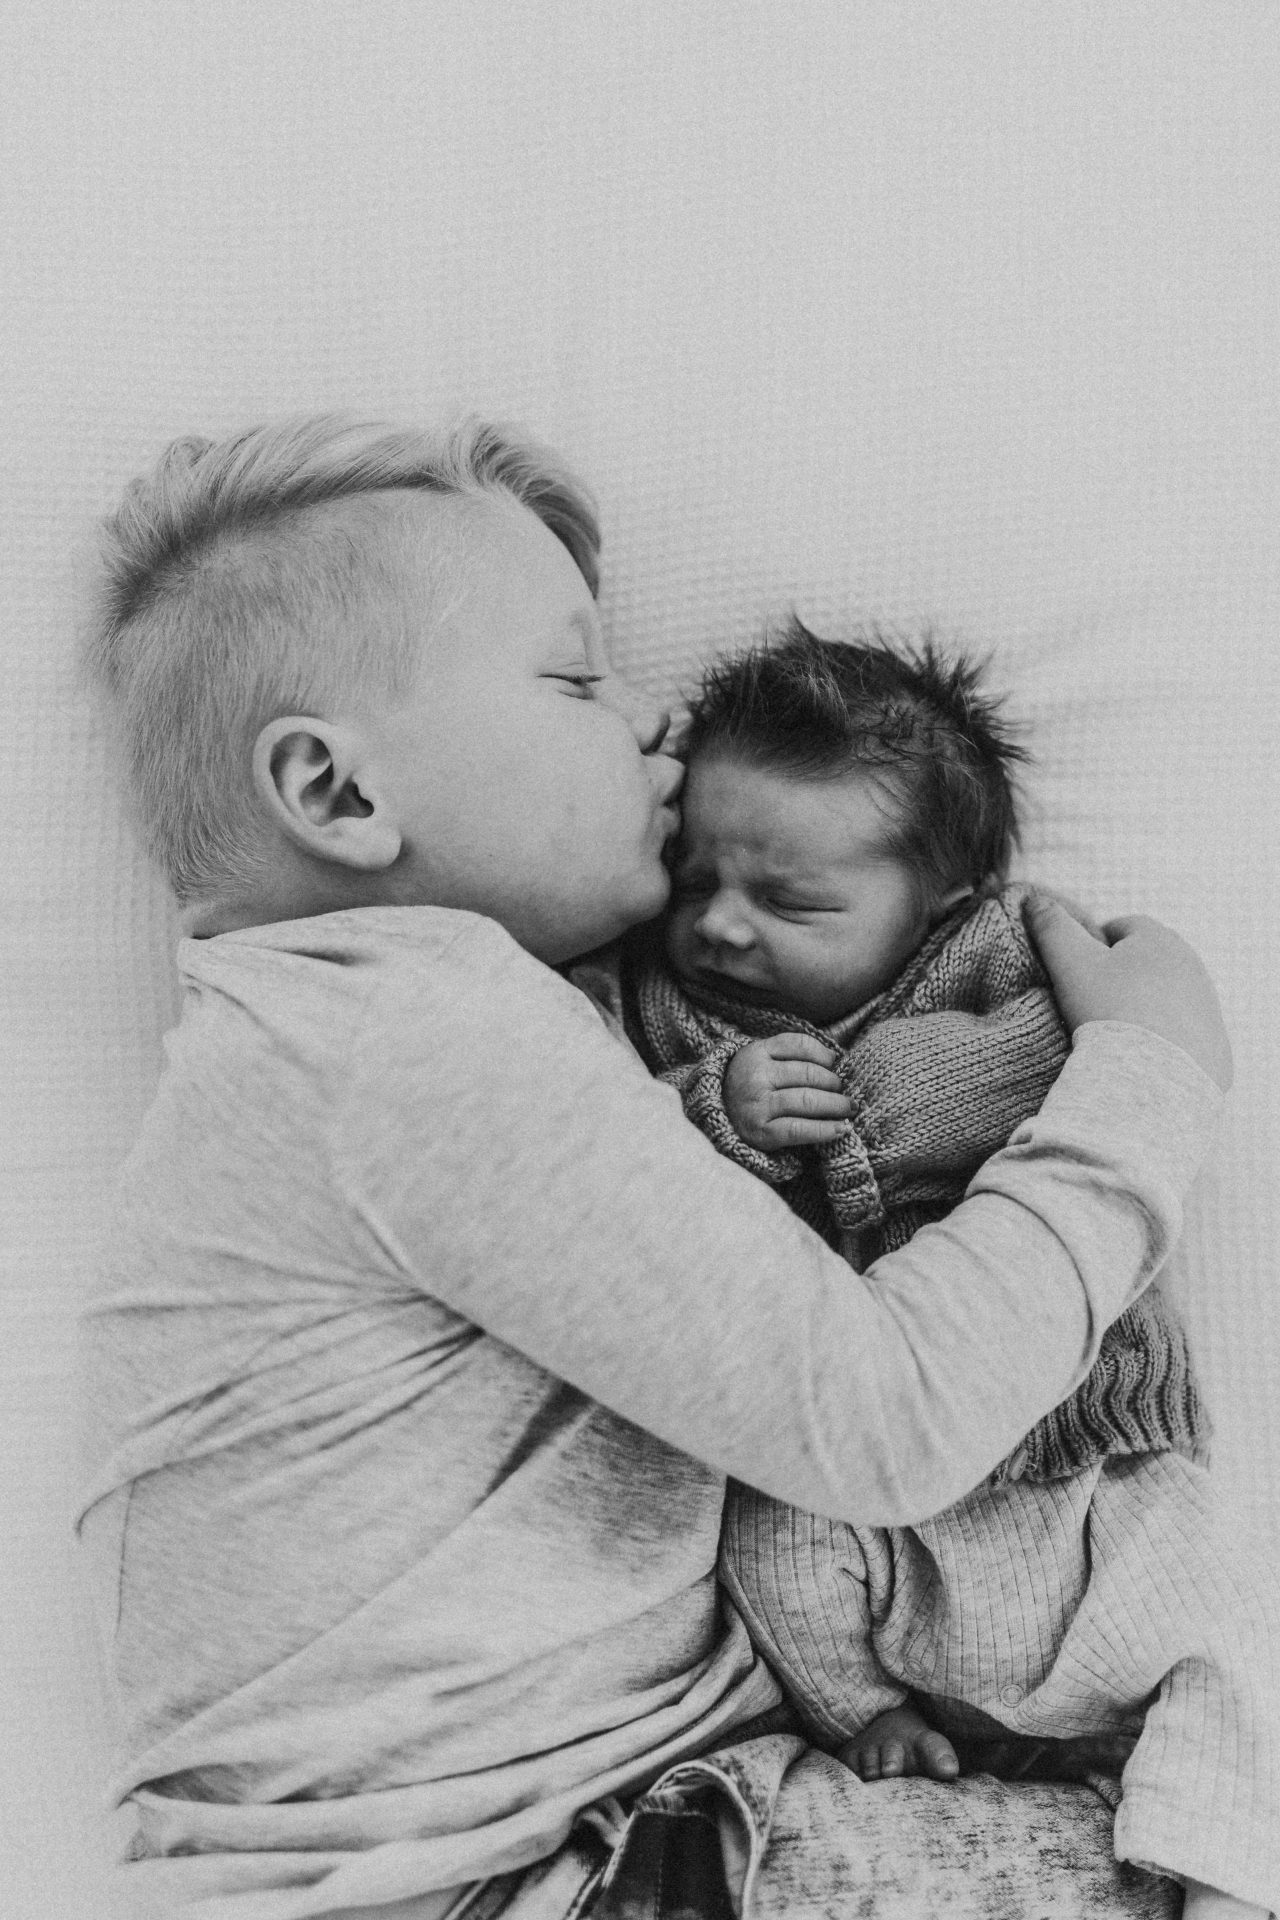 Black and white image of toddler boy hugging and kissing his newborn baby brother